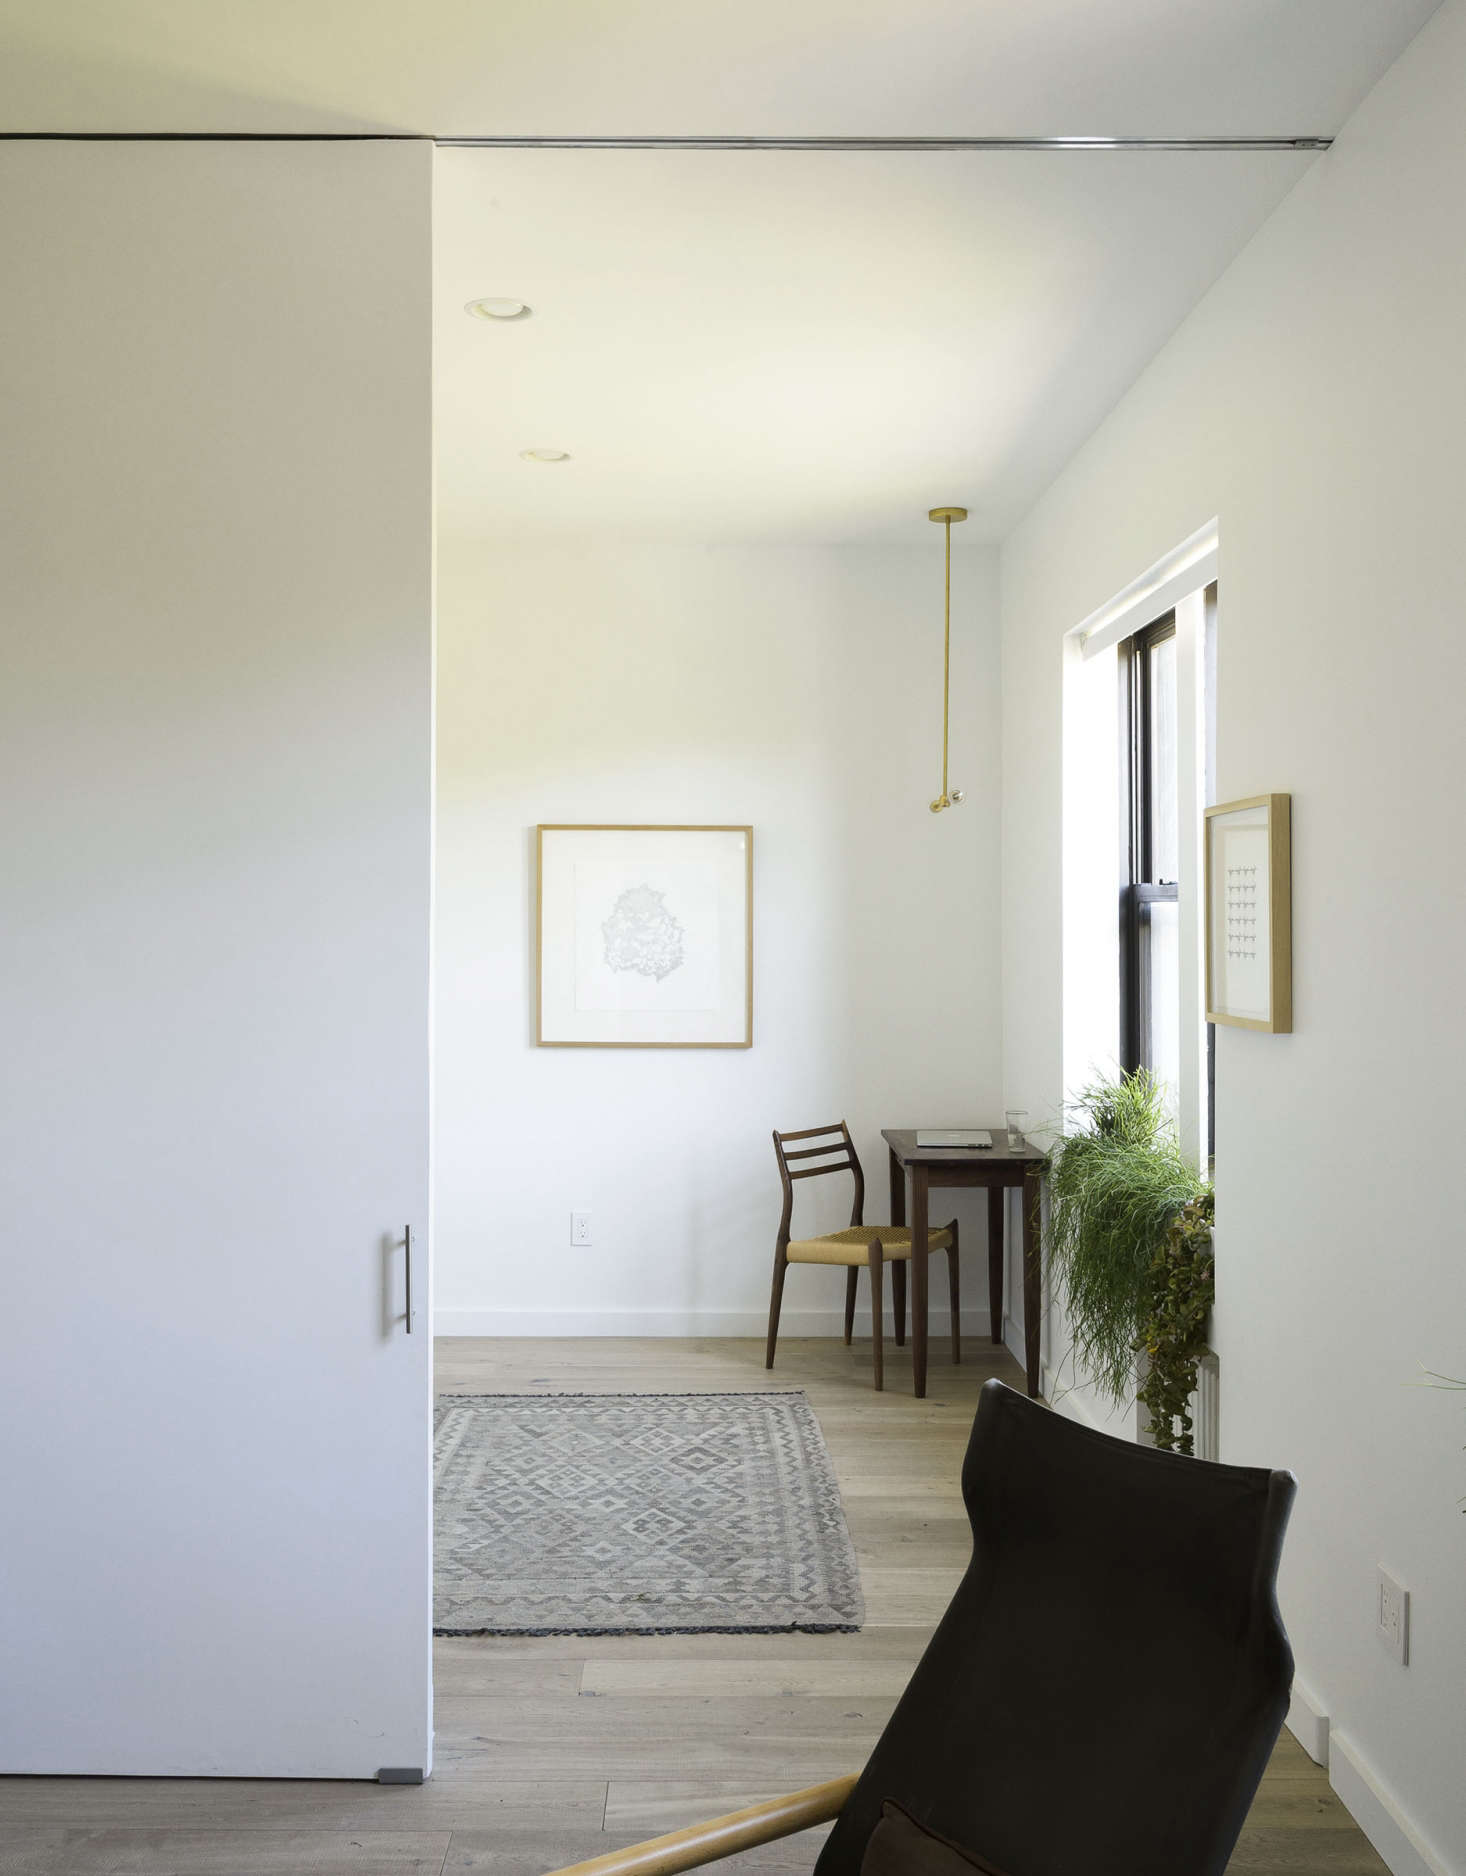 Small Floor Spotlights Expert Advice 5 Things To Know About Recessed Lighting From